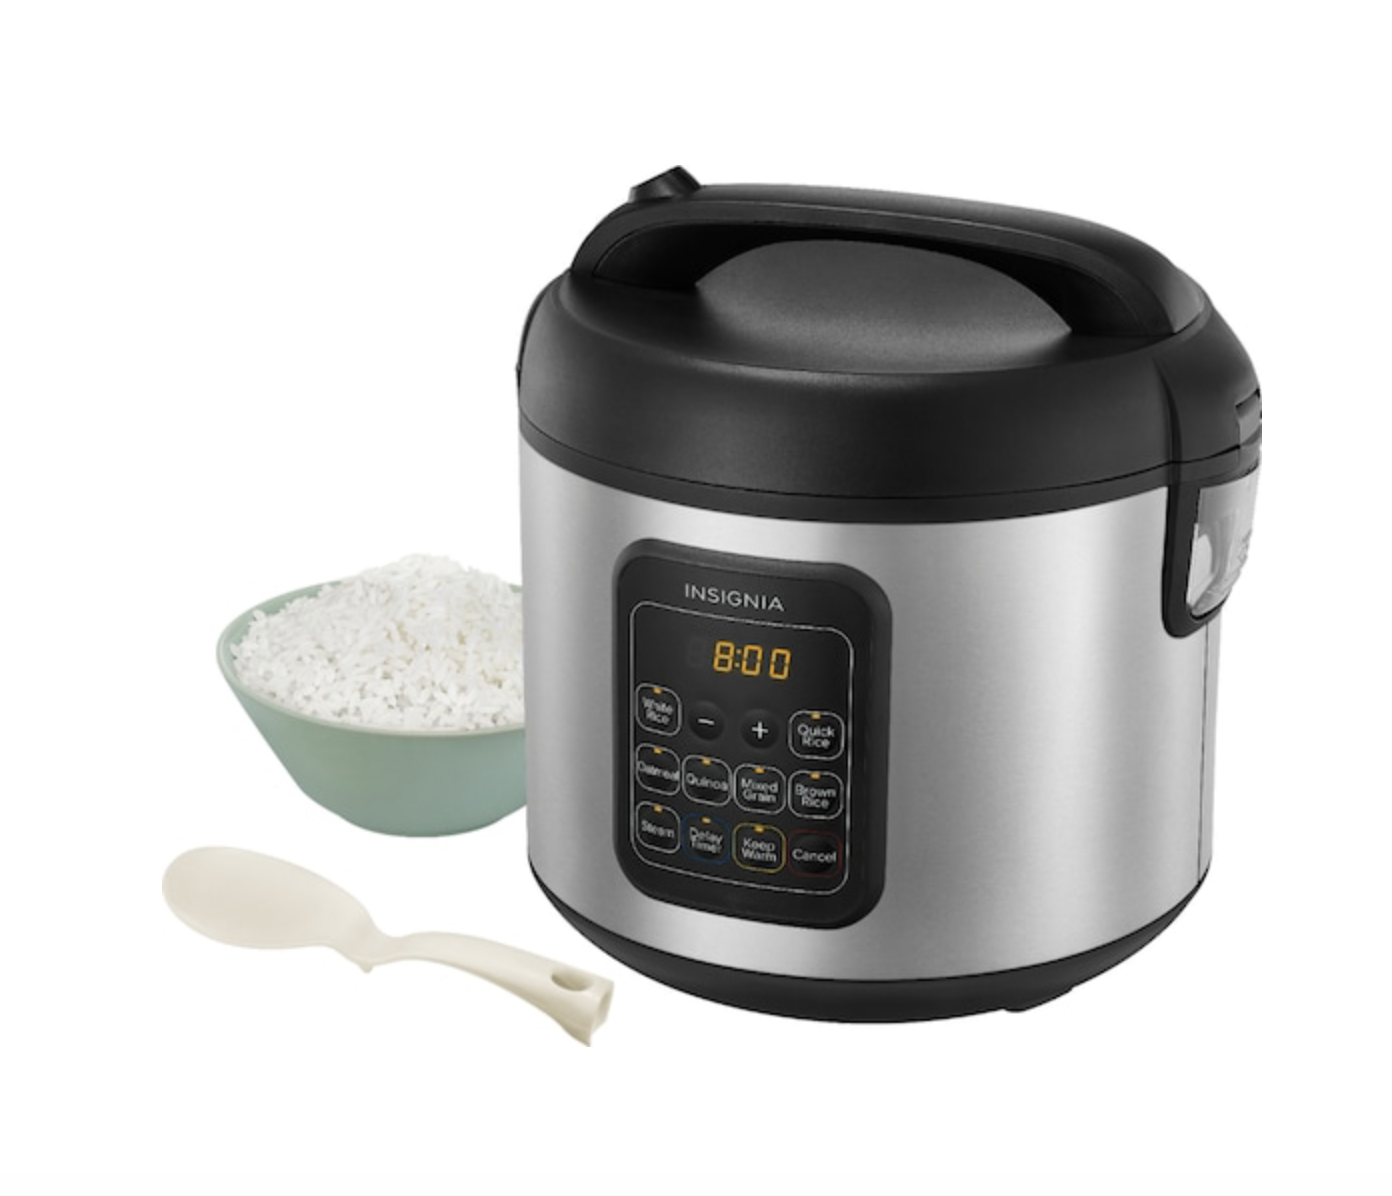 Best Buy: Insignia 20-cup rice cooker .99